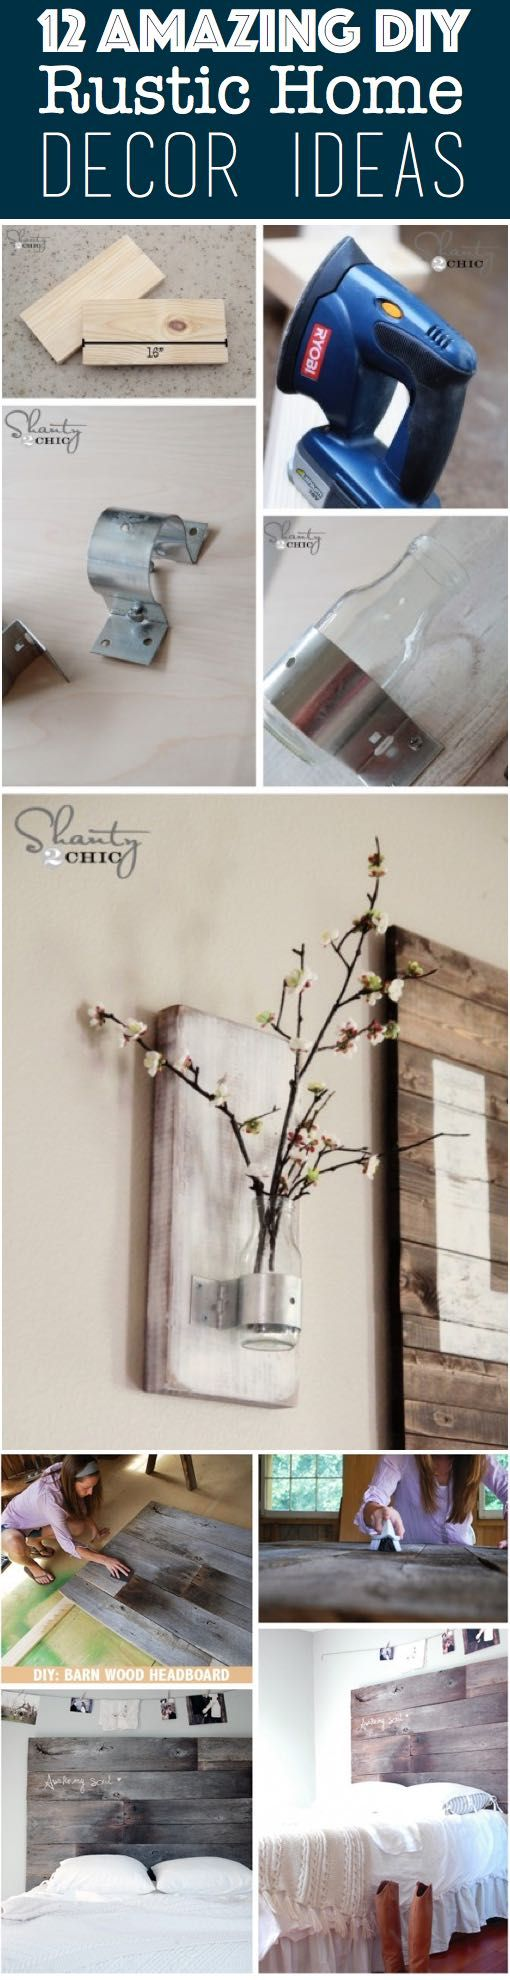 12 amazing diy rustic home decor ideas - Home Rustic Decor